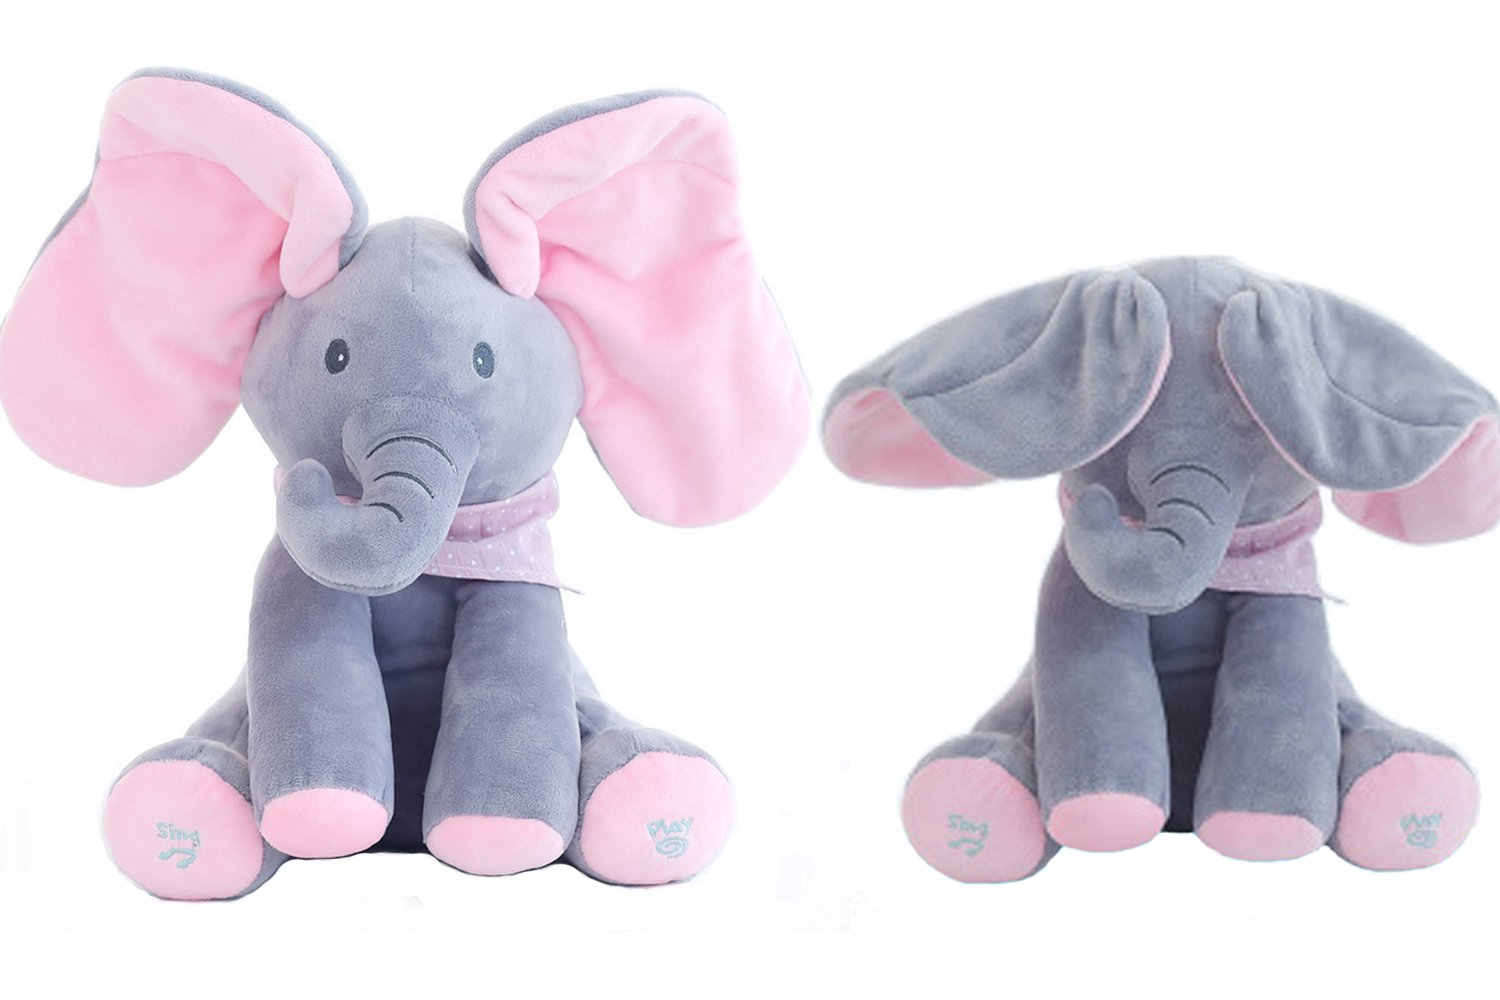 OMGOD Plush Toy peek-a-Boo Elephant, Hide-and-Seek Game Baby Animated Plush Elephant Doll Present - Pink by OMGOD